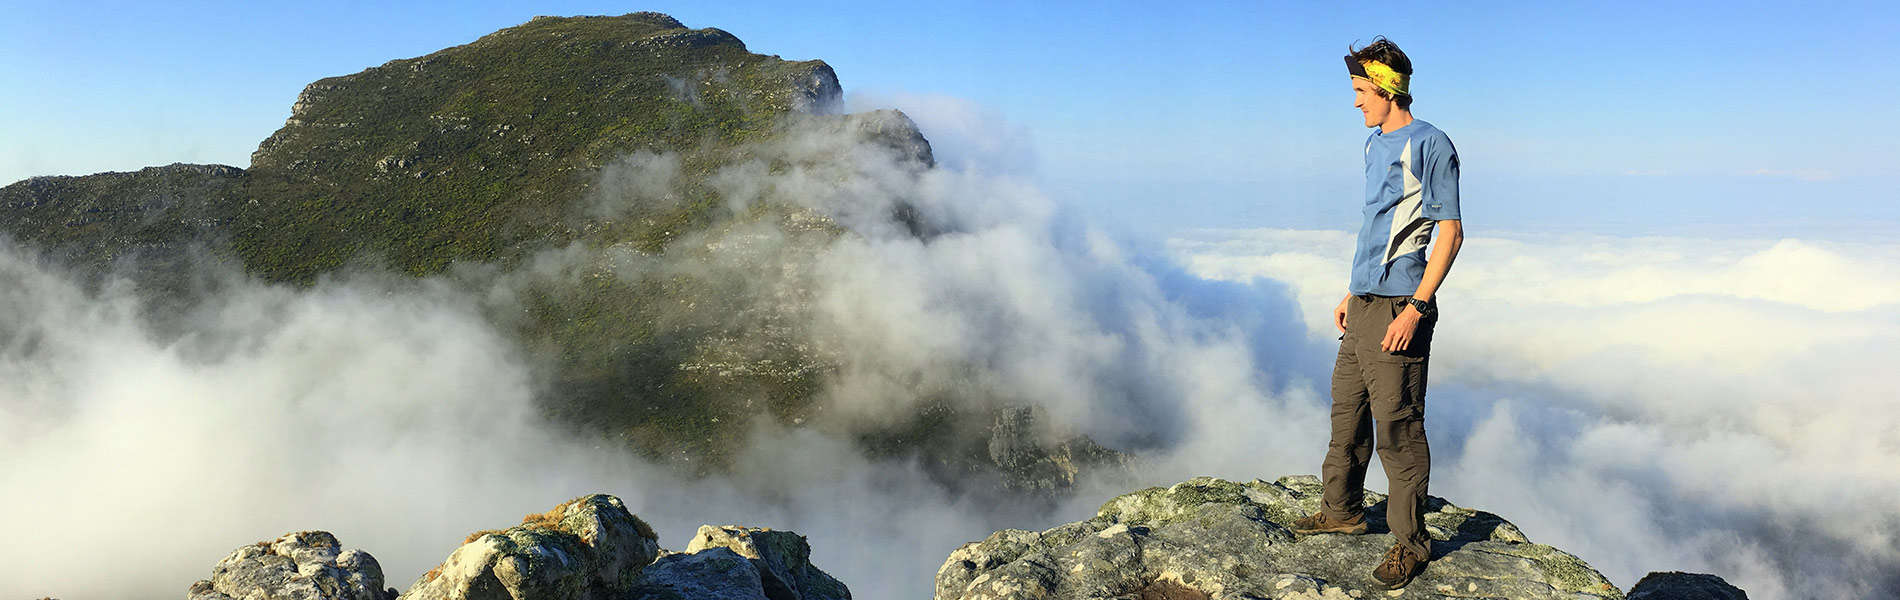 https://hiketablemountain.co.za/wp-content/uploads/2016/09/BlogEdit.jpg